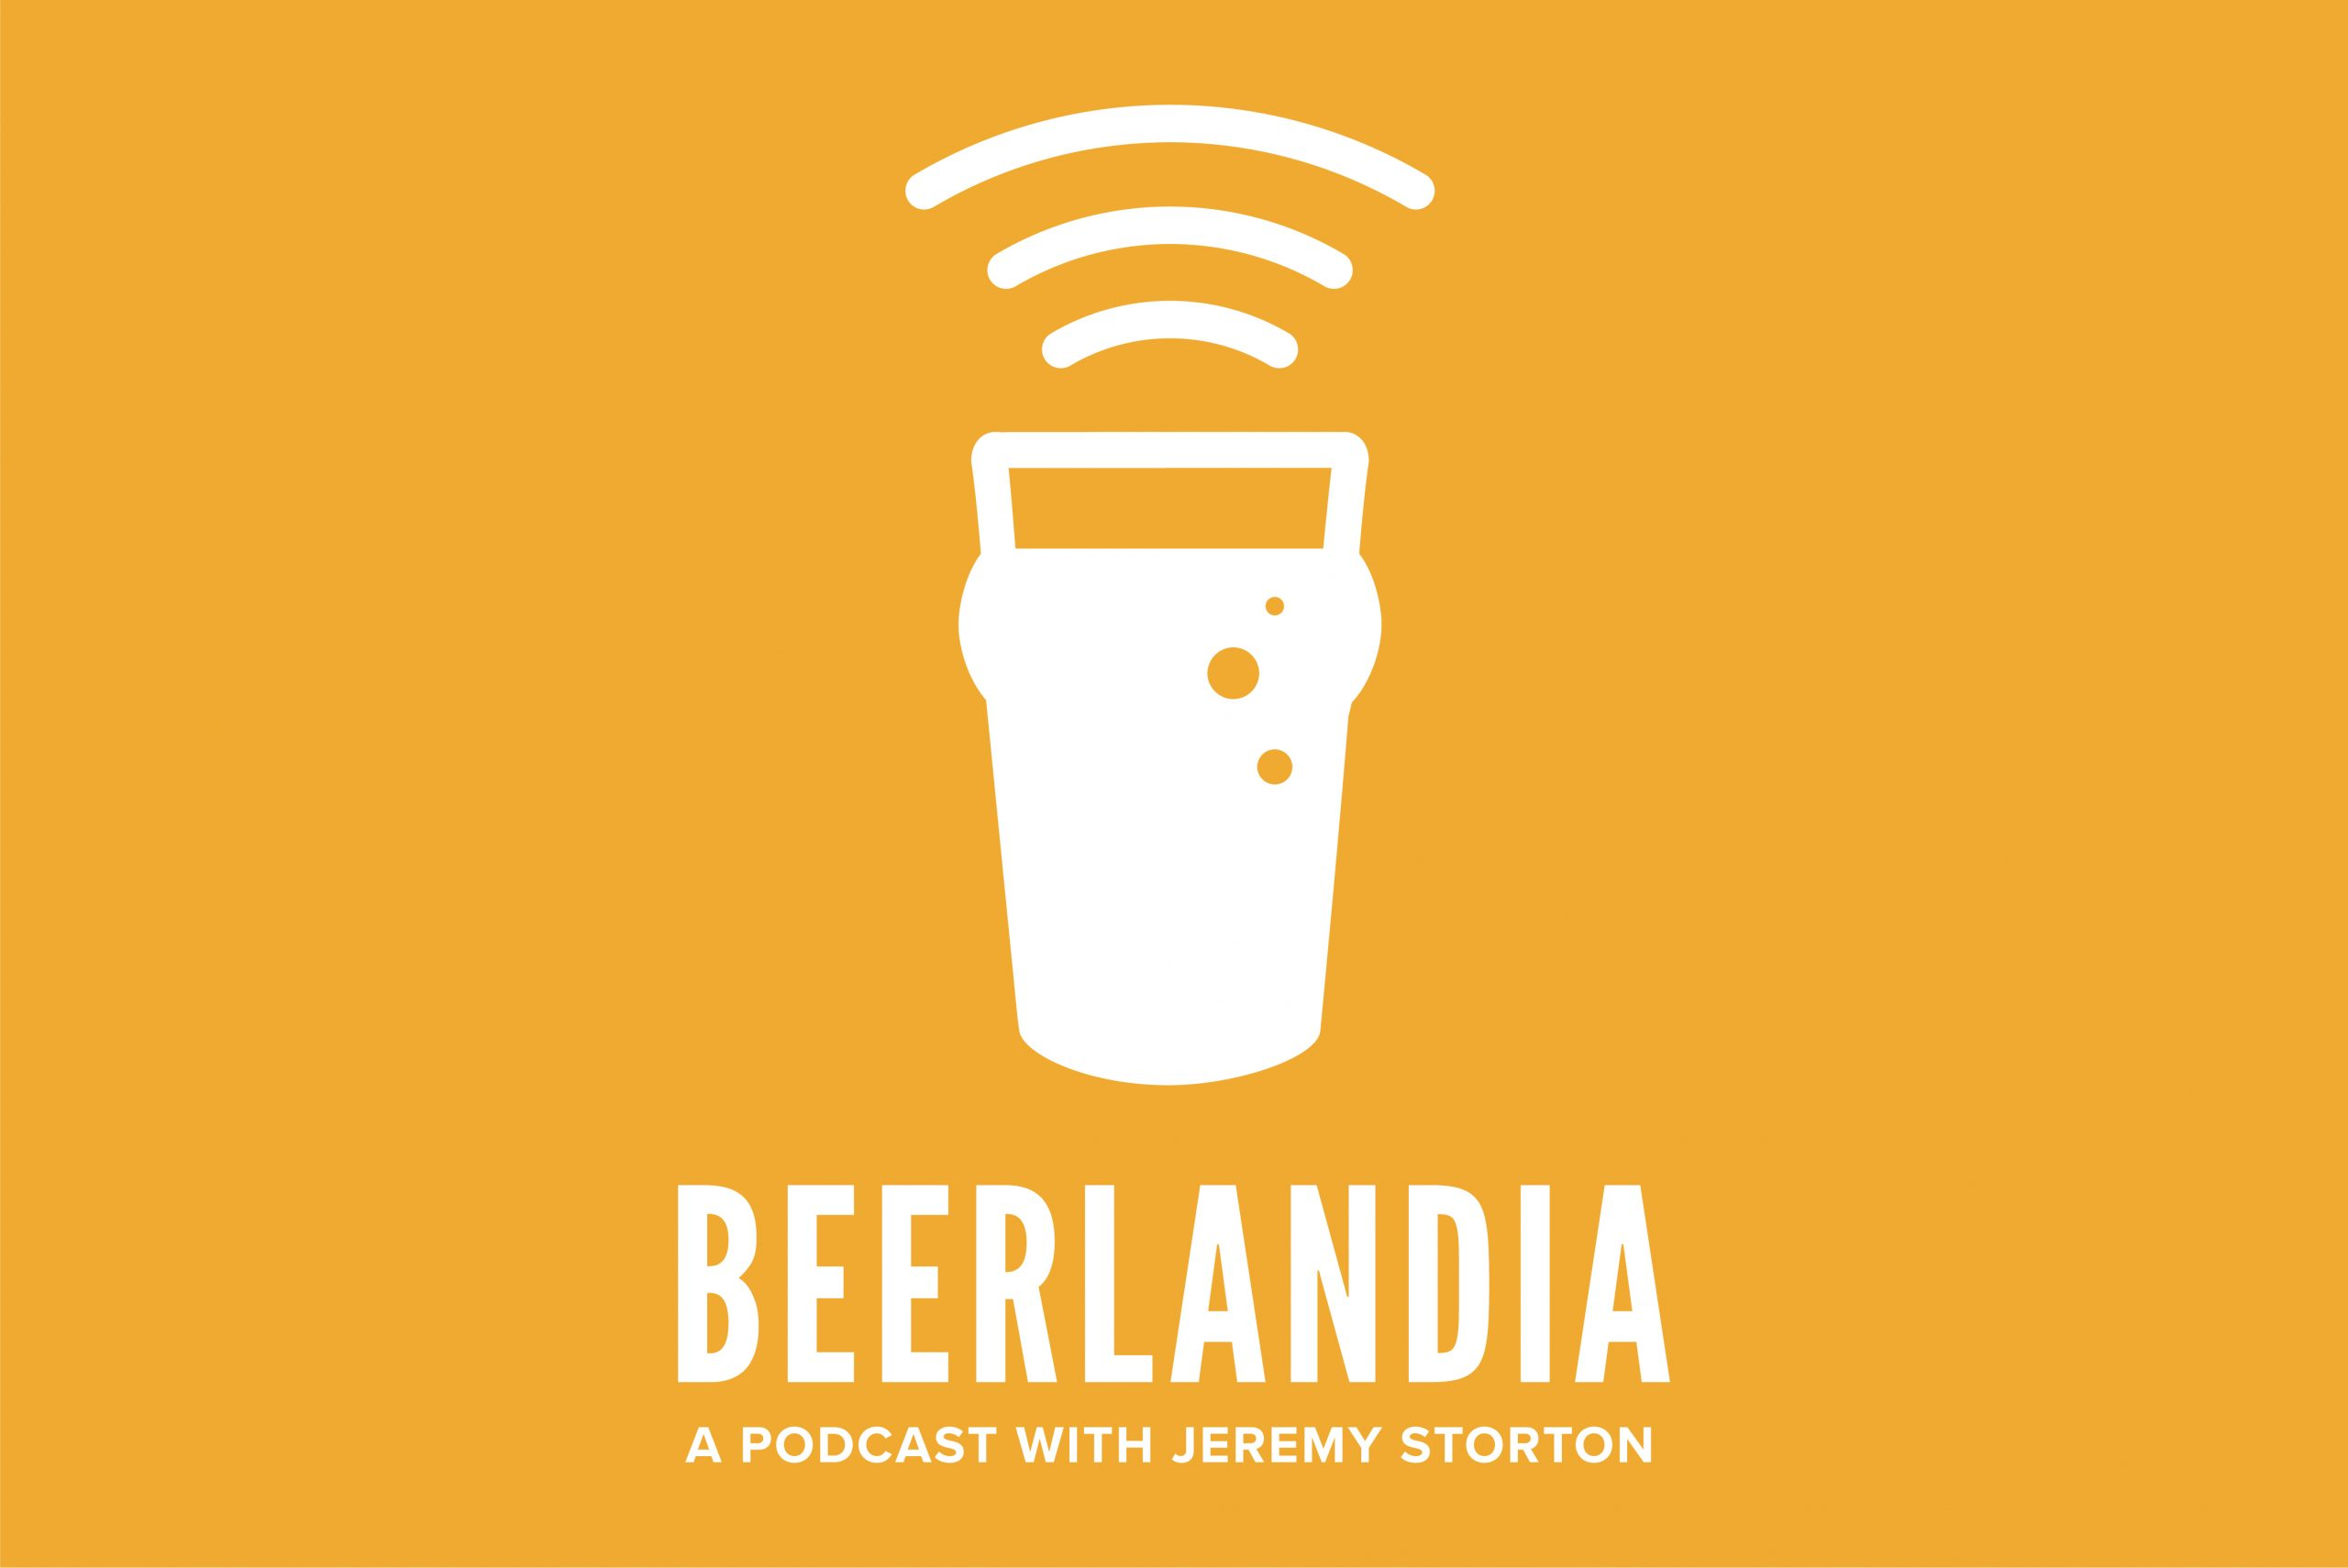 Beerlandia Podcast with Tamara Logsdon from Wyeast Labs